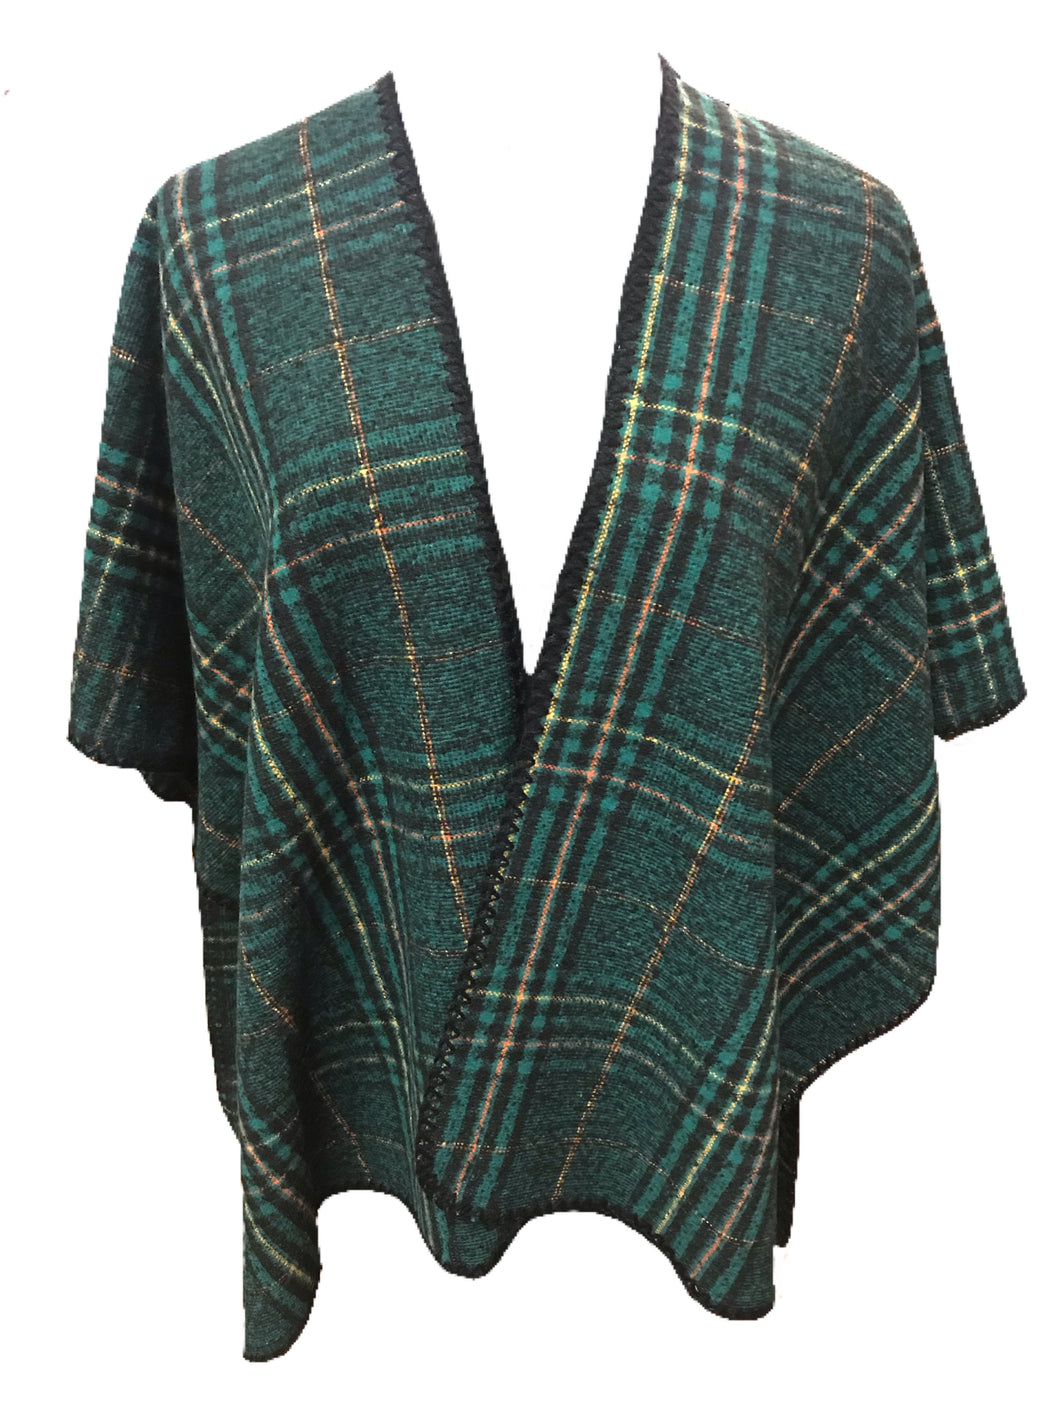 Green Plaid Print Oversized Poncho with Stitched Edges